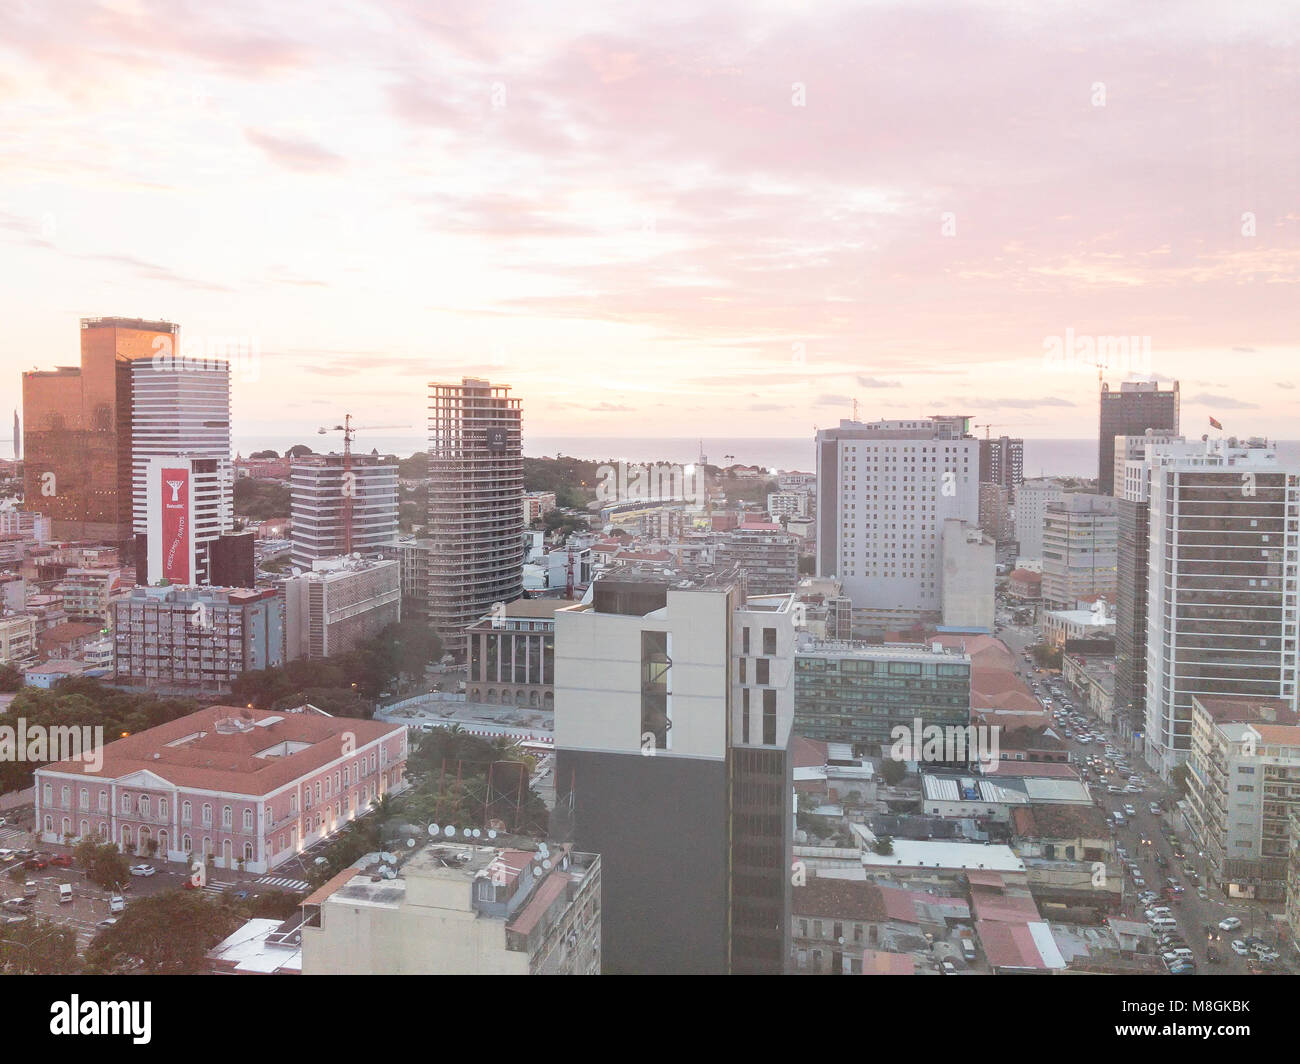 LUANDA, ANGOLA - MARCH 11, 2018: Construction continues in the Angolan capital of Luanda despite ongoing economic - Stock Image